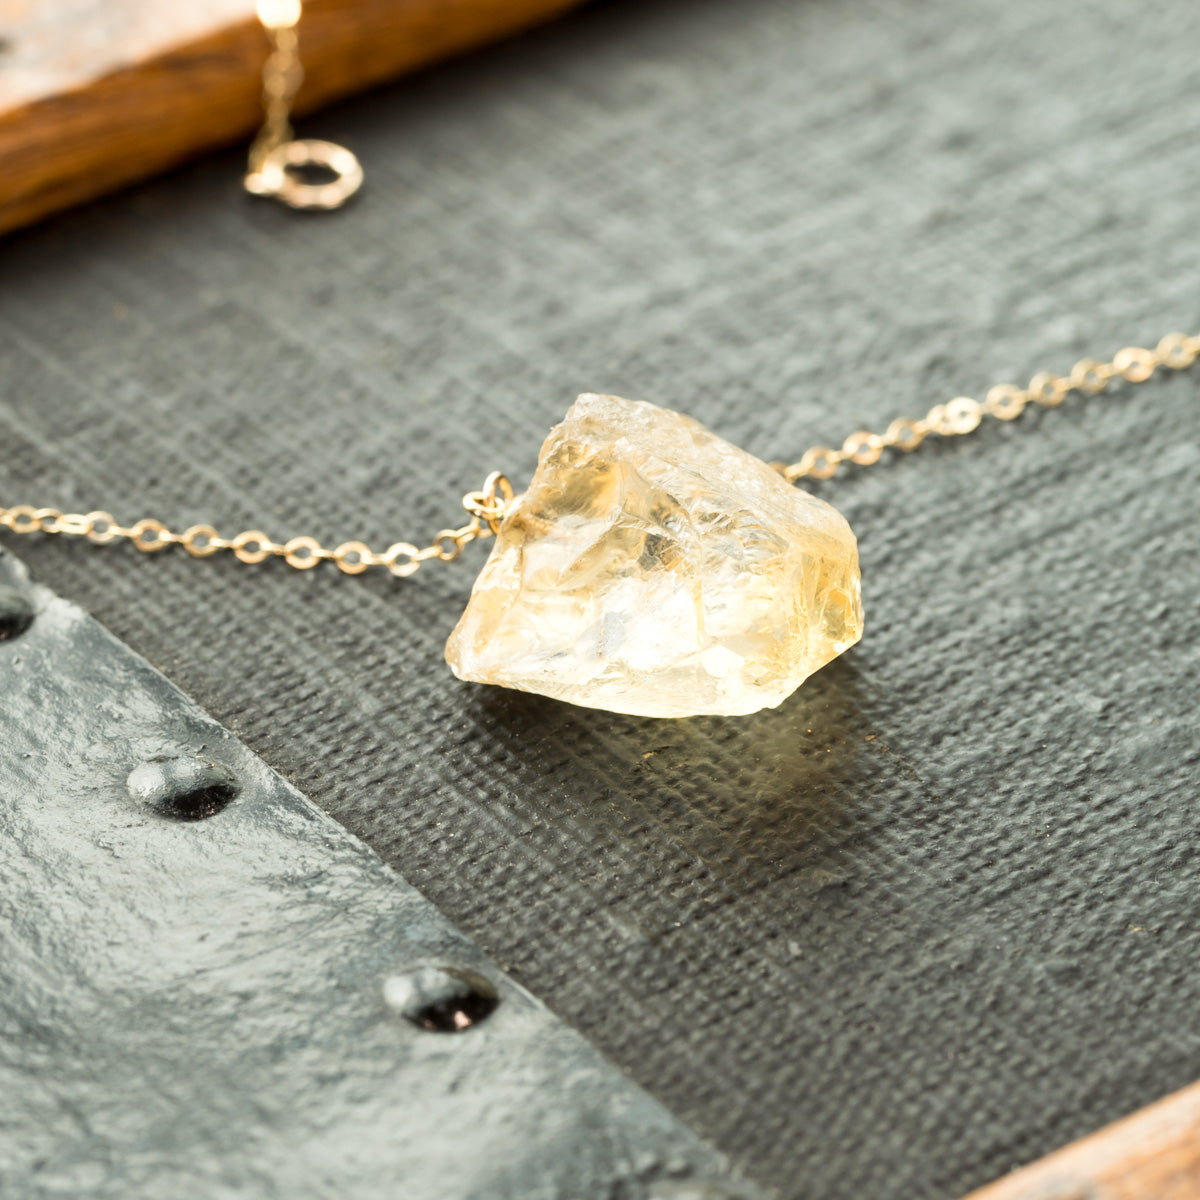 Citrine Necklace, The Rayo de Sol Necklace, Raw Citrine Crystal Necklace, Citrine Chunk Necklace, Citrine Pendant, Gemstone Necklace, Liz.Beth Jewelry Co.